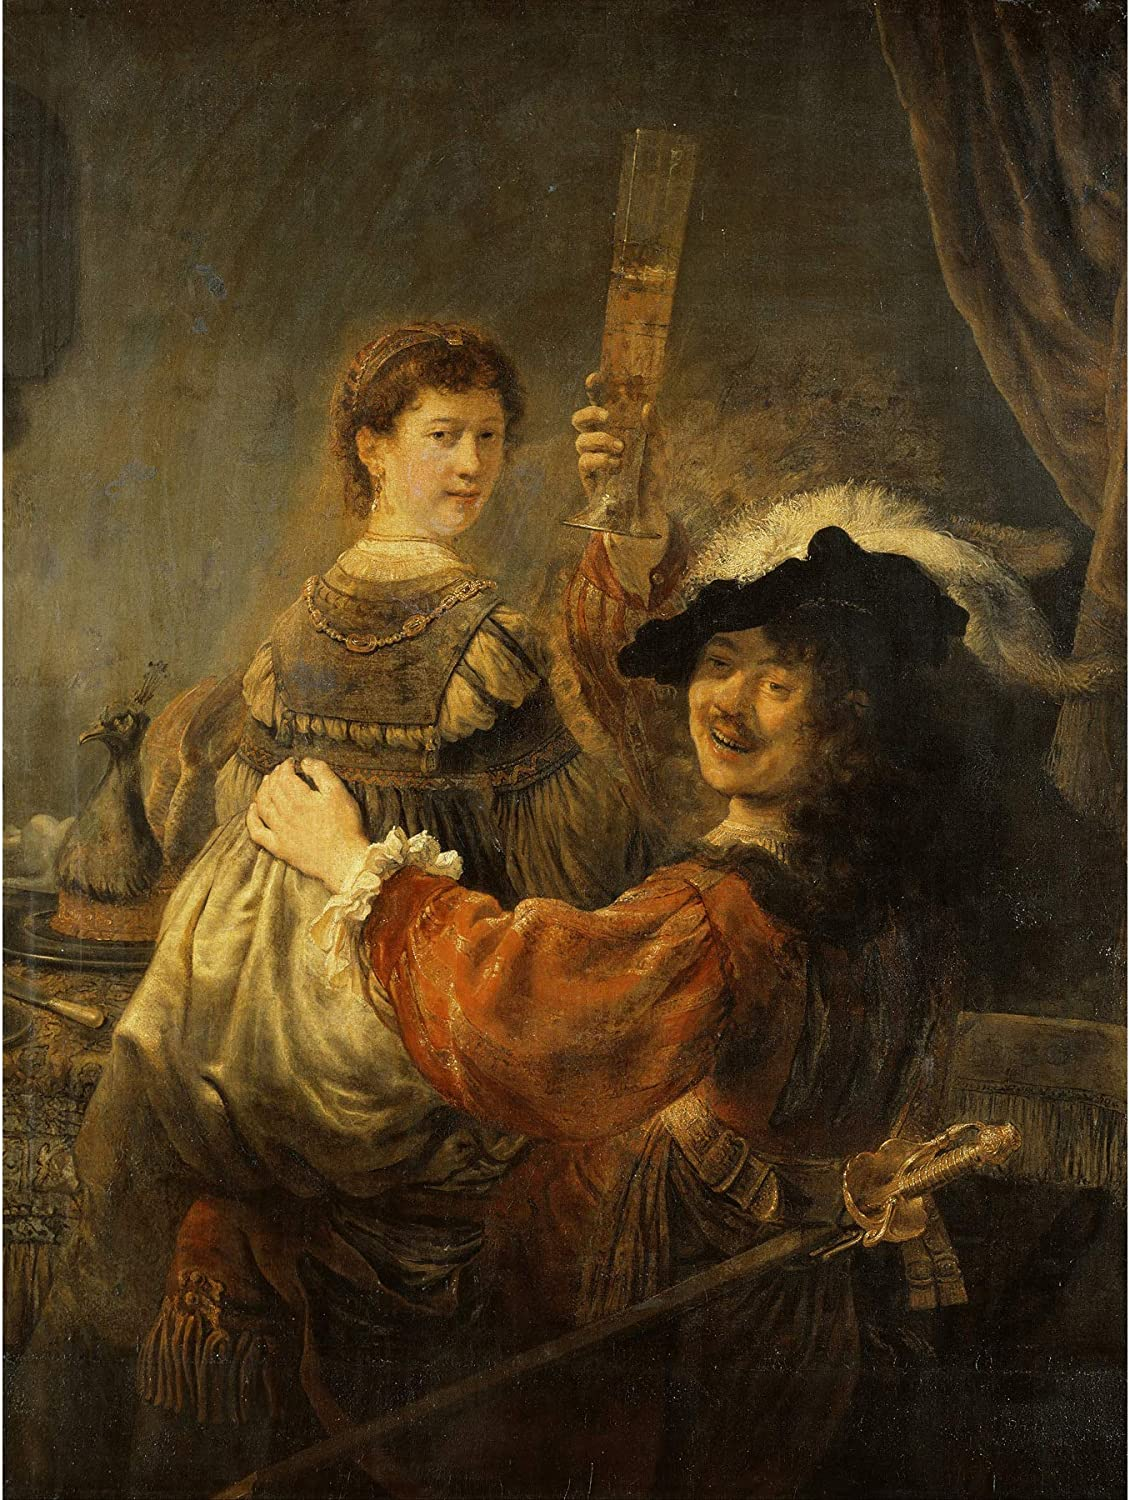 Rembrandt & Saskia In The Scene Of The Prodigal Son Large Art Print Poster Wall Decor Premium Mural